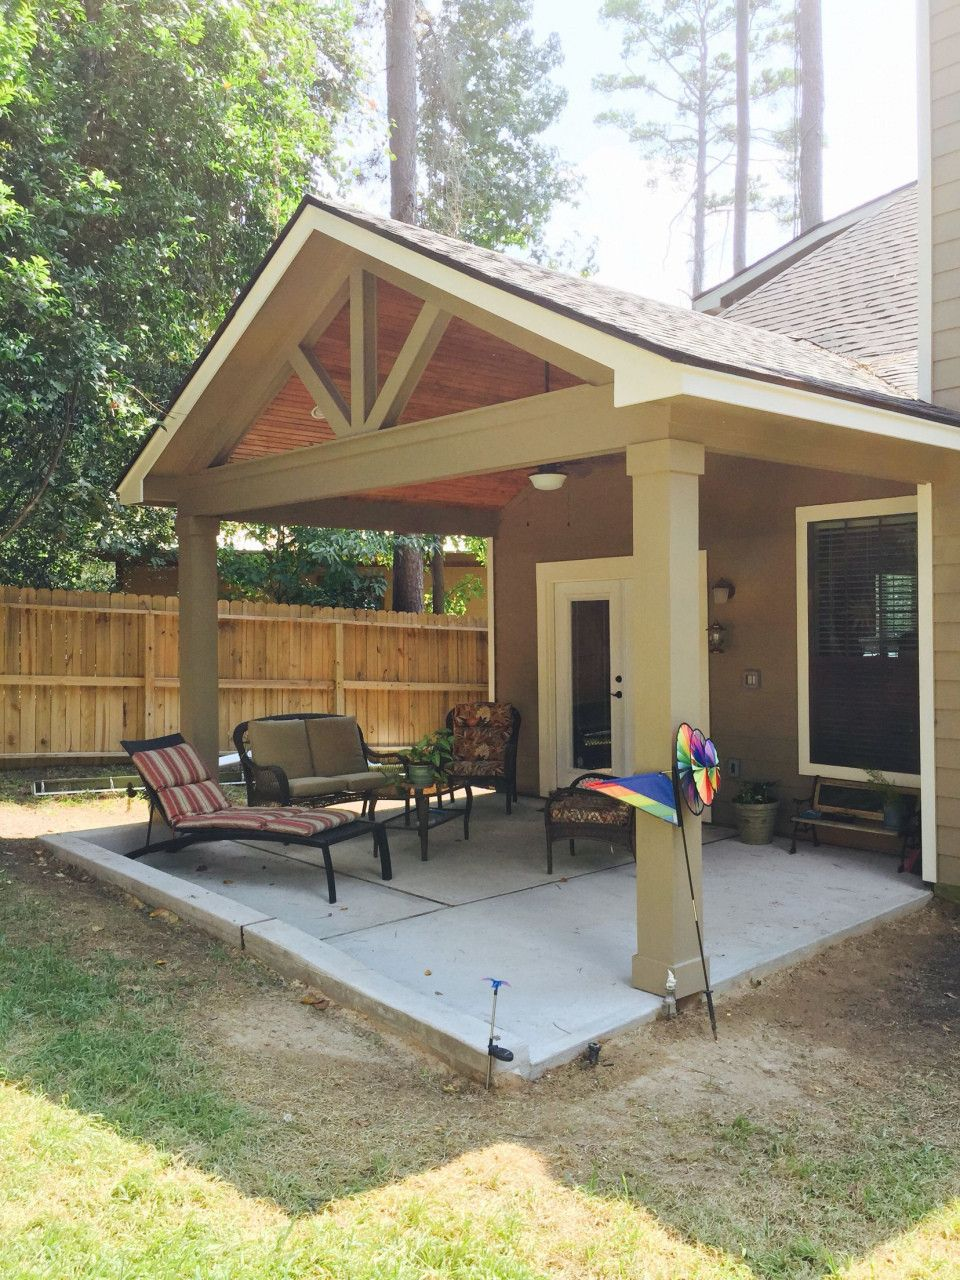 10 Backyard Patio Roof Cost Porch Roof Ideas Patio Roof Ideas Awesome Patio Decoration In 2020 Concrete Patio Backyard Porch Patio Design